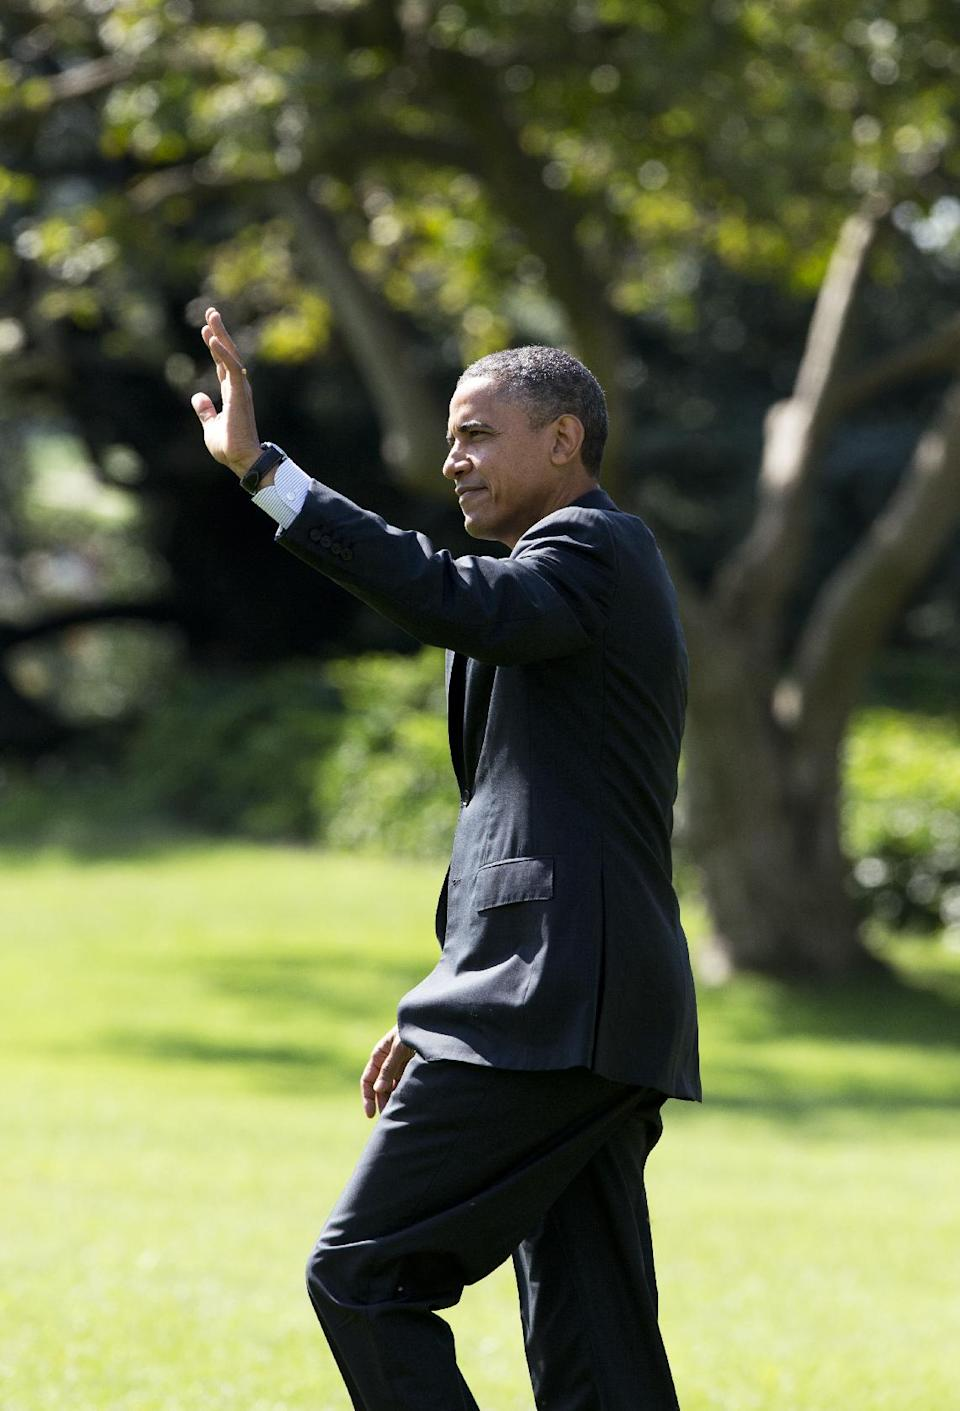 President Barack Obama waves as he leaves the White House in Washington for a campaign trip to Florida, Thursday, Sept. 20, 2012.  (AP Photo/Manuel Balce Ceneta)